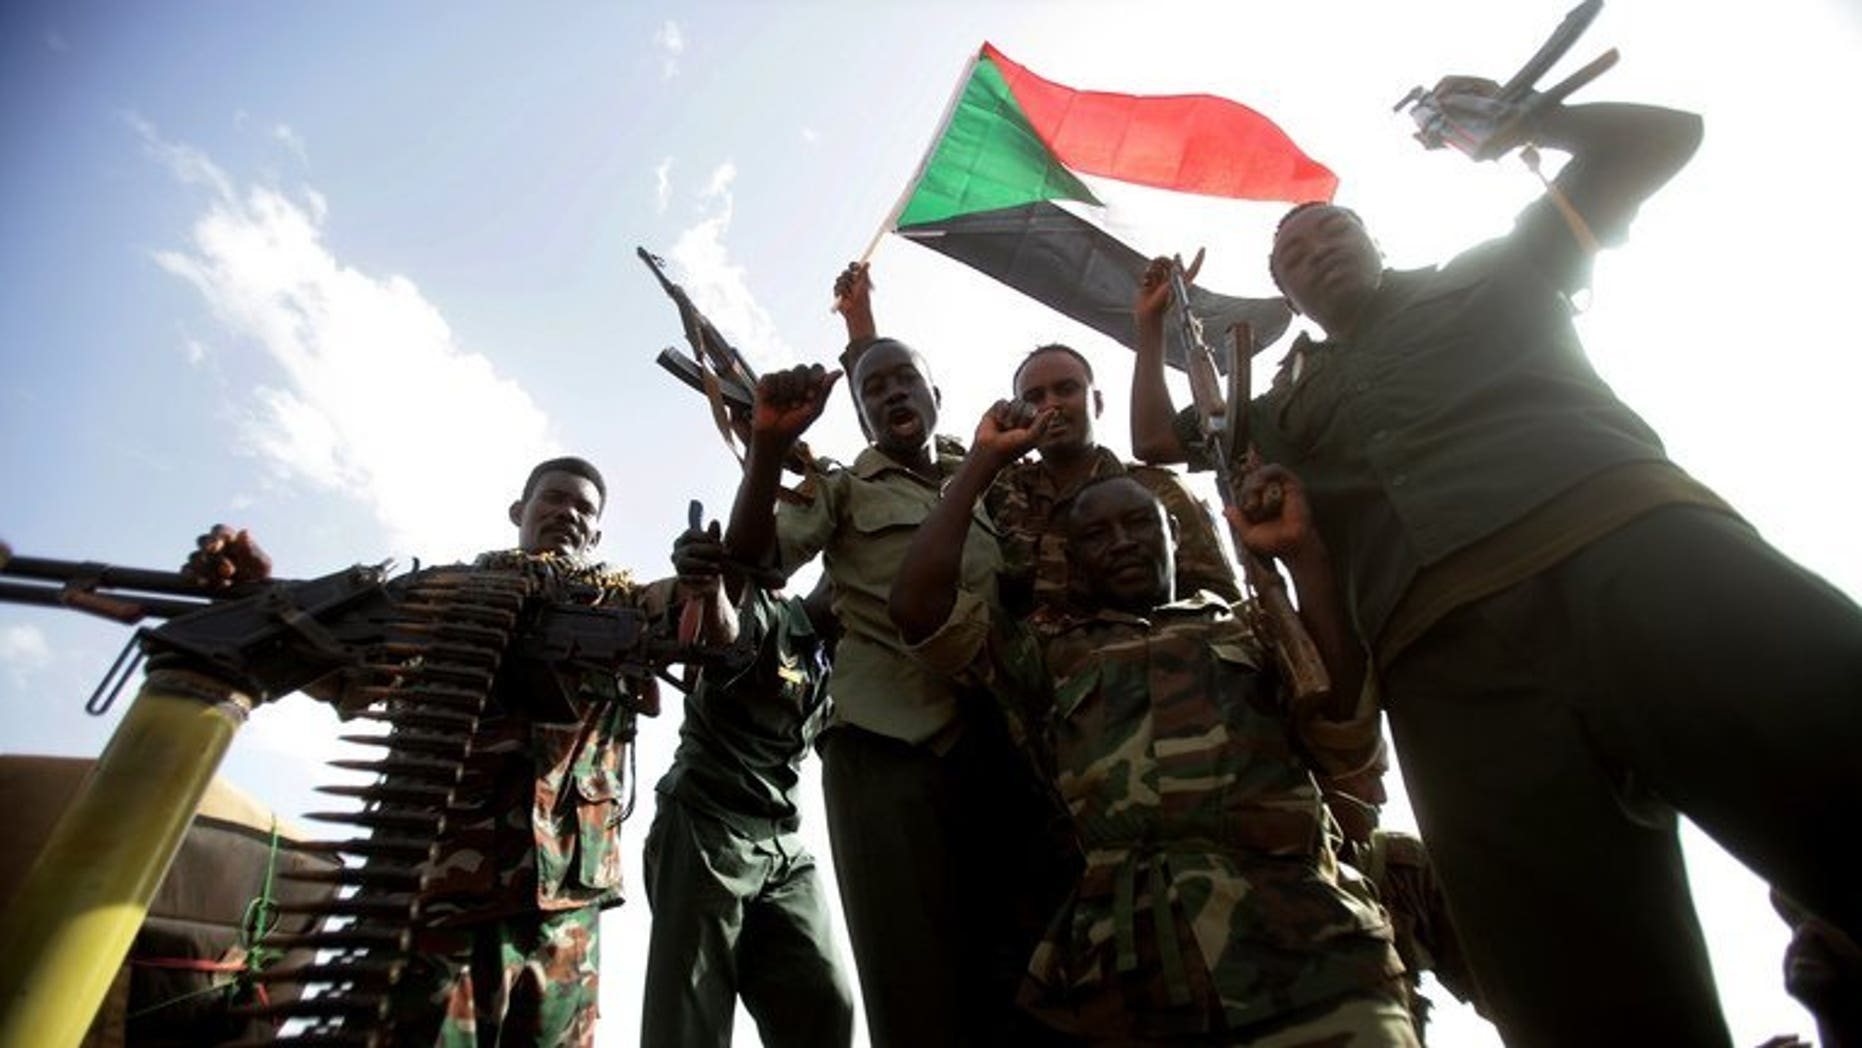 Sudanese soldiers cheer as they hold up their guns and a national flag during President Omar al-Bashir's visit to Sudan's main petroleum centre of Heglig on April 23, 2012. A new general took command of the Sudan Armed Forces (SAF) on Tuesday after what analysts called humiliating attacks by anti-government rebels.